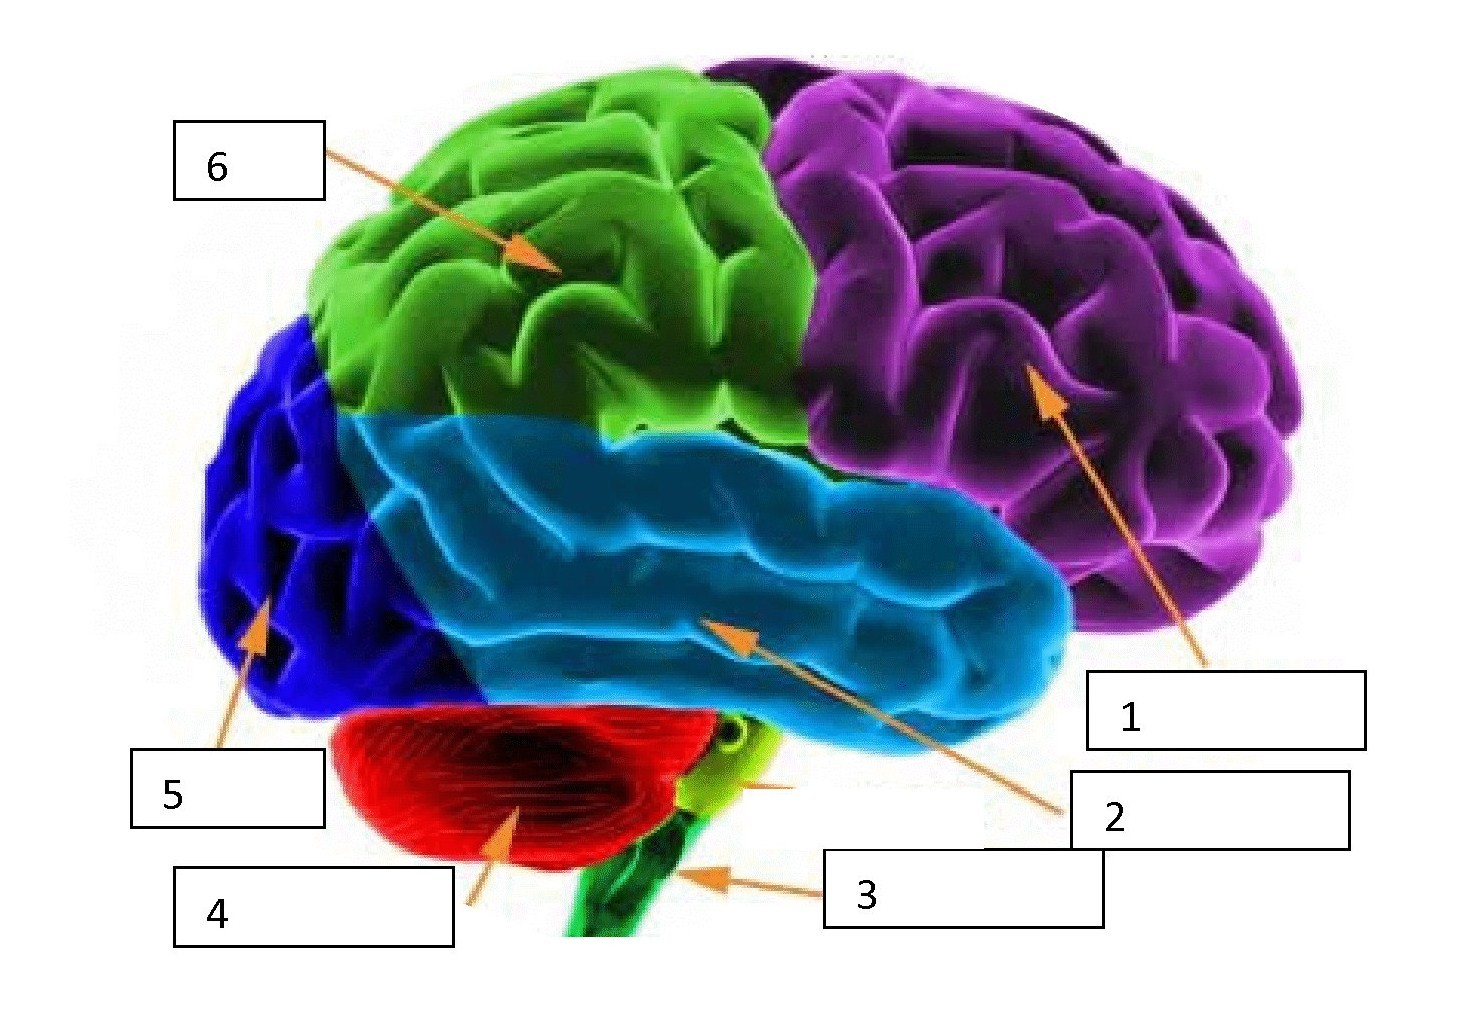 Quiz Over The Brain And Nervous System - ProProfs Quiz